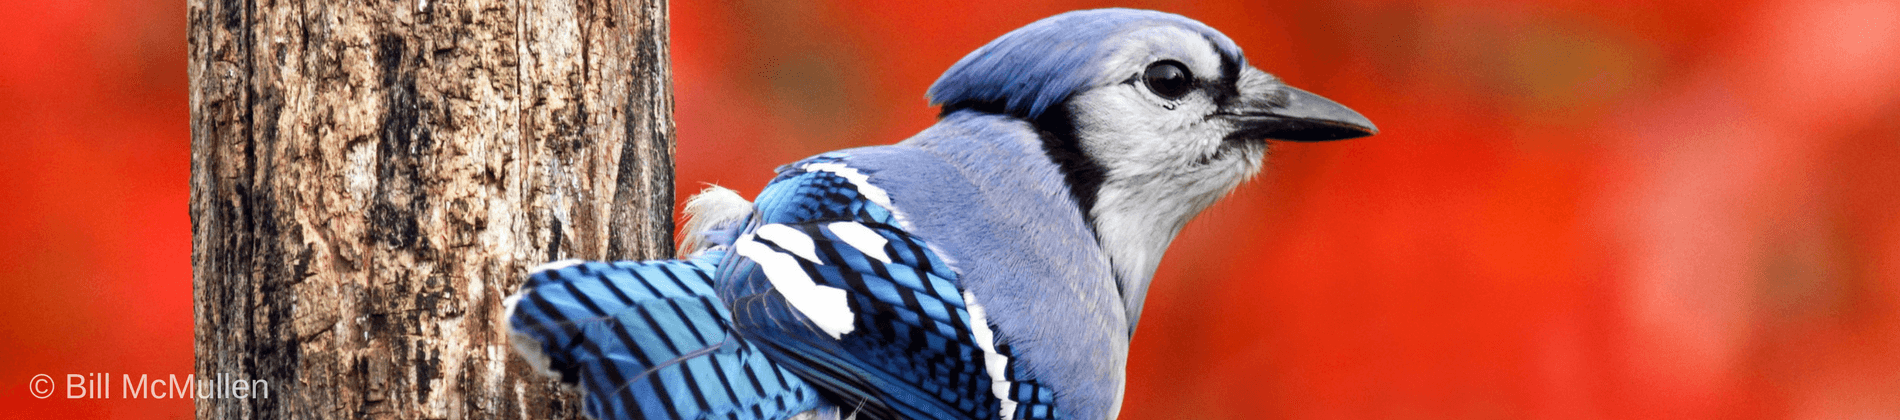 Image of Autumn Blue Jay by Bill Mcmullen